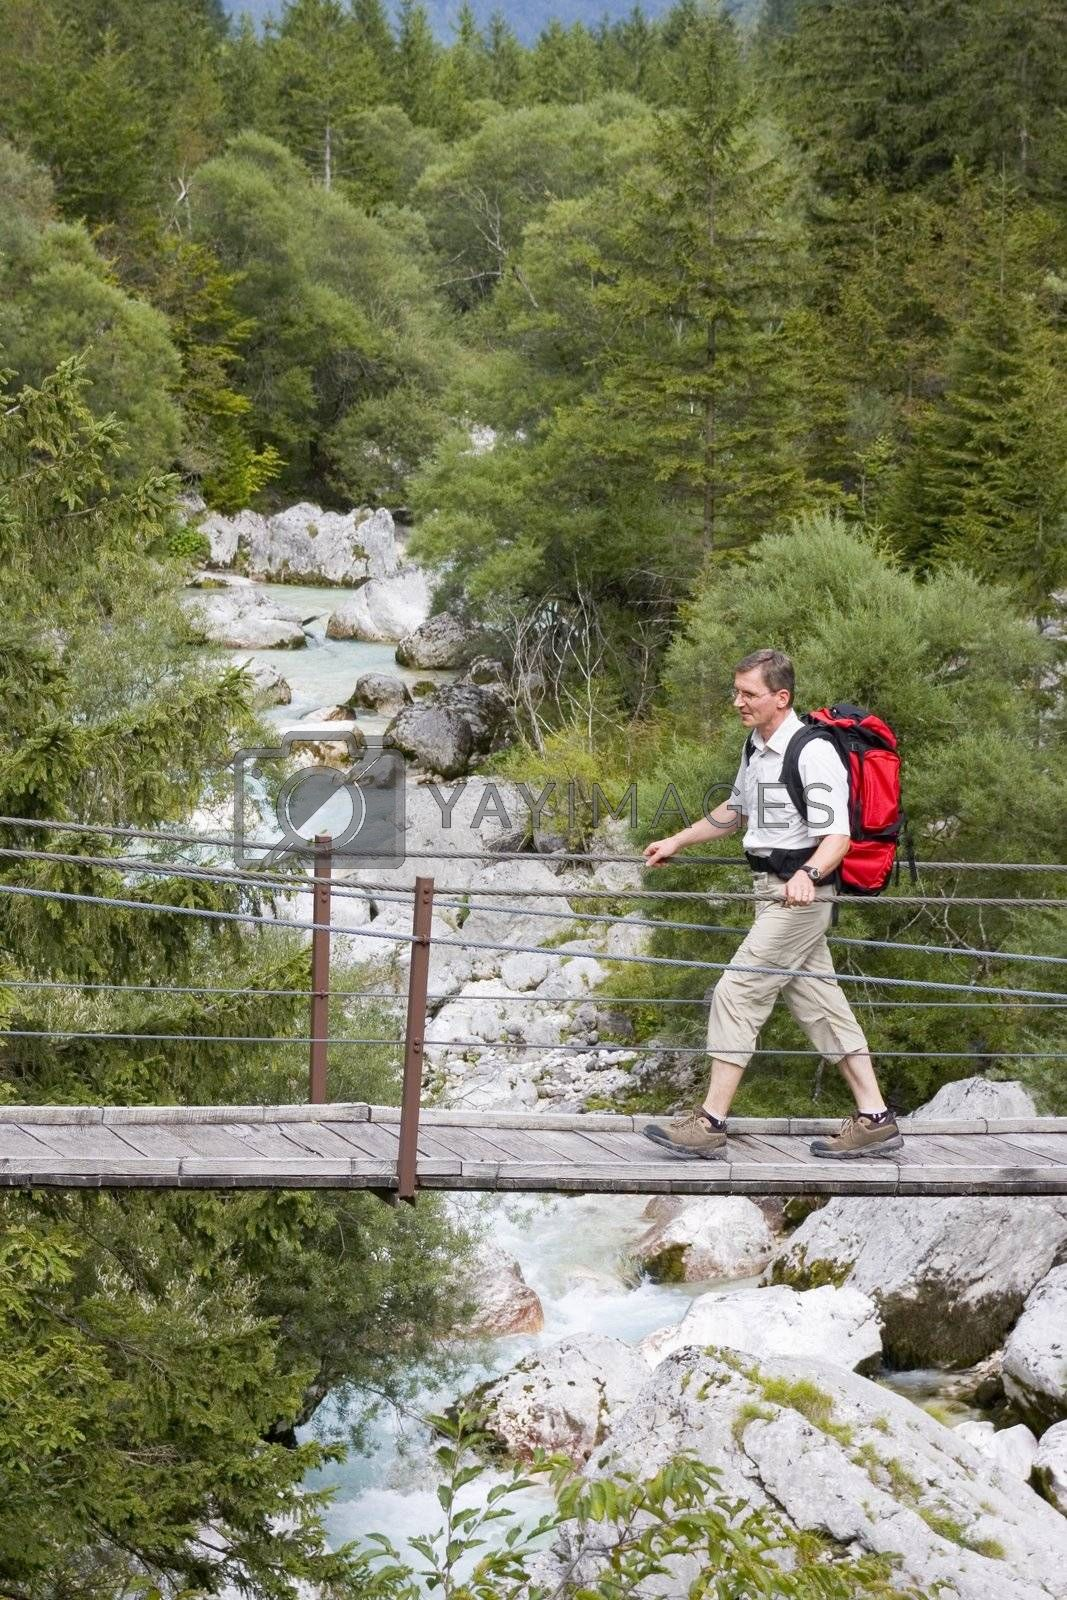 Hiker with rucksack crossing a rope bridge in the wilderness